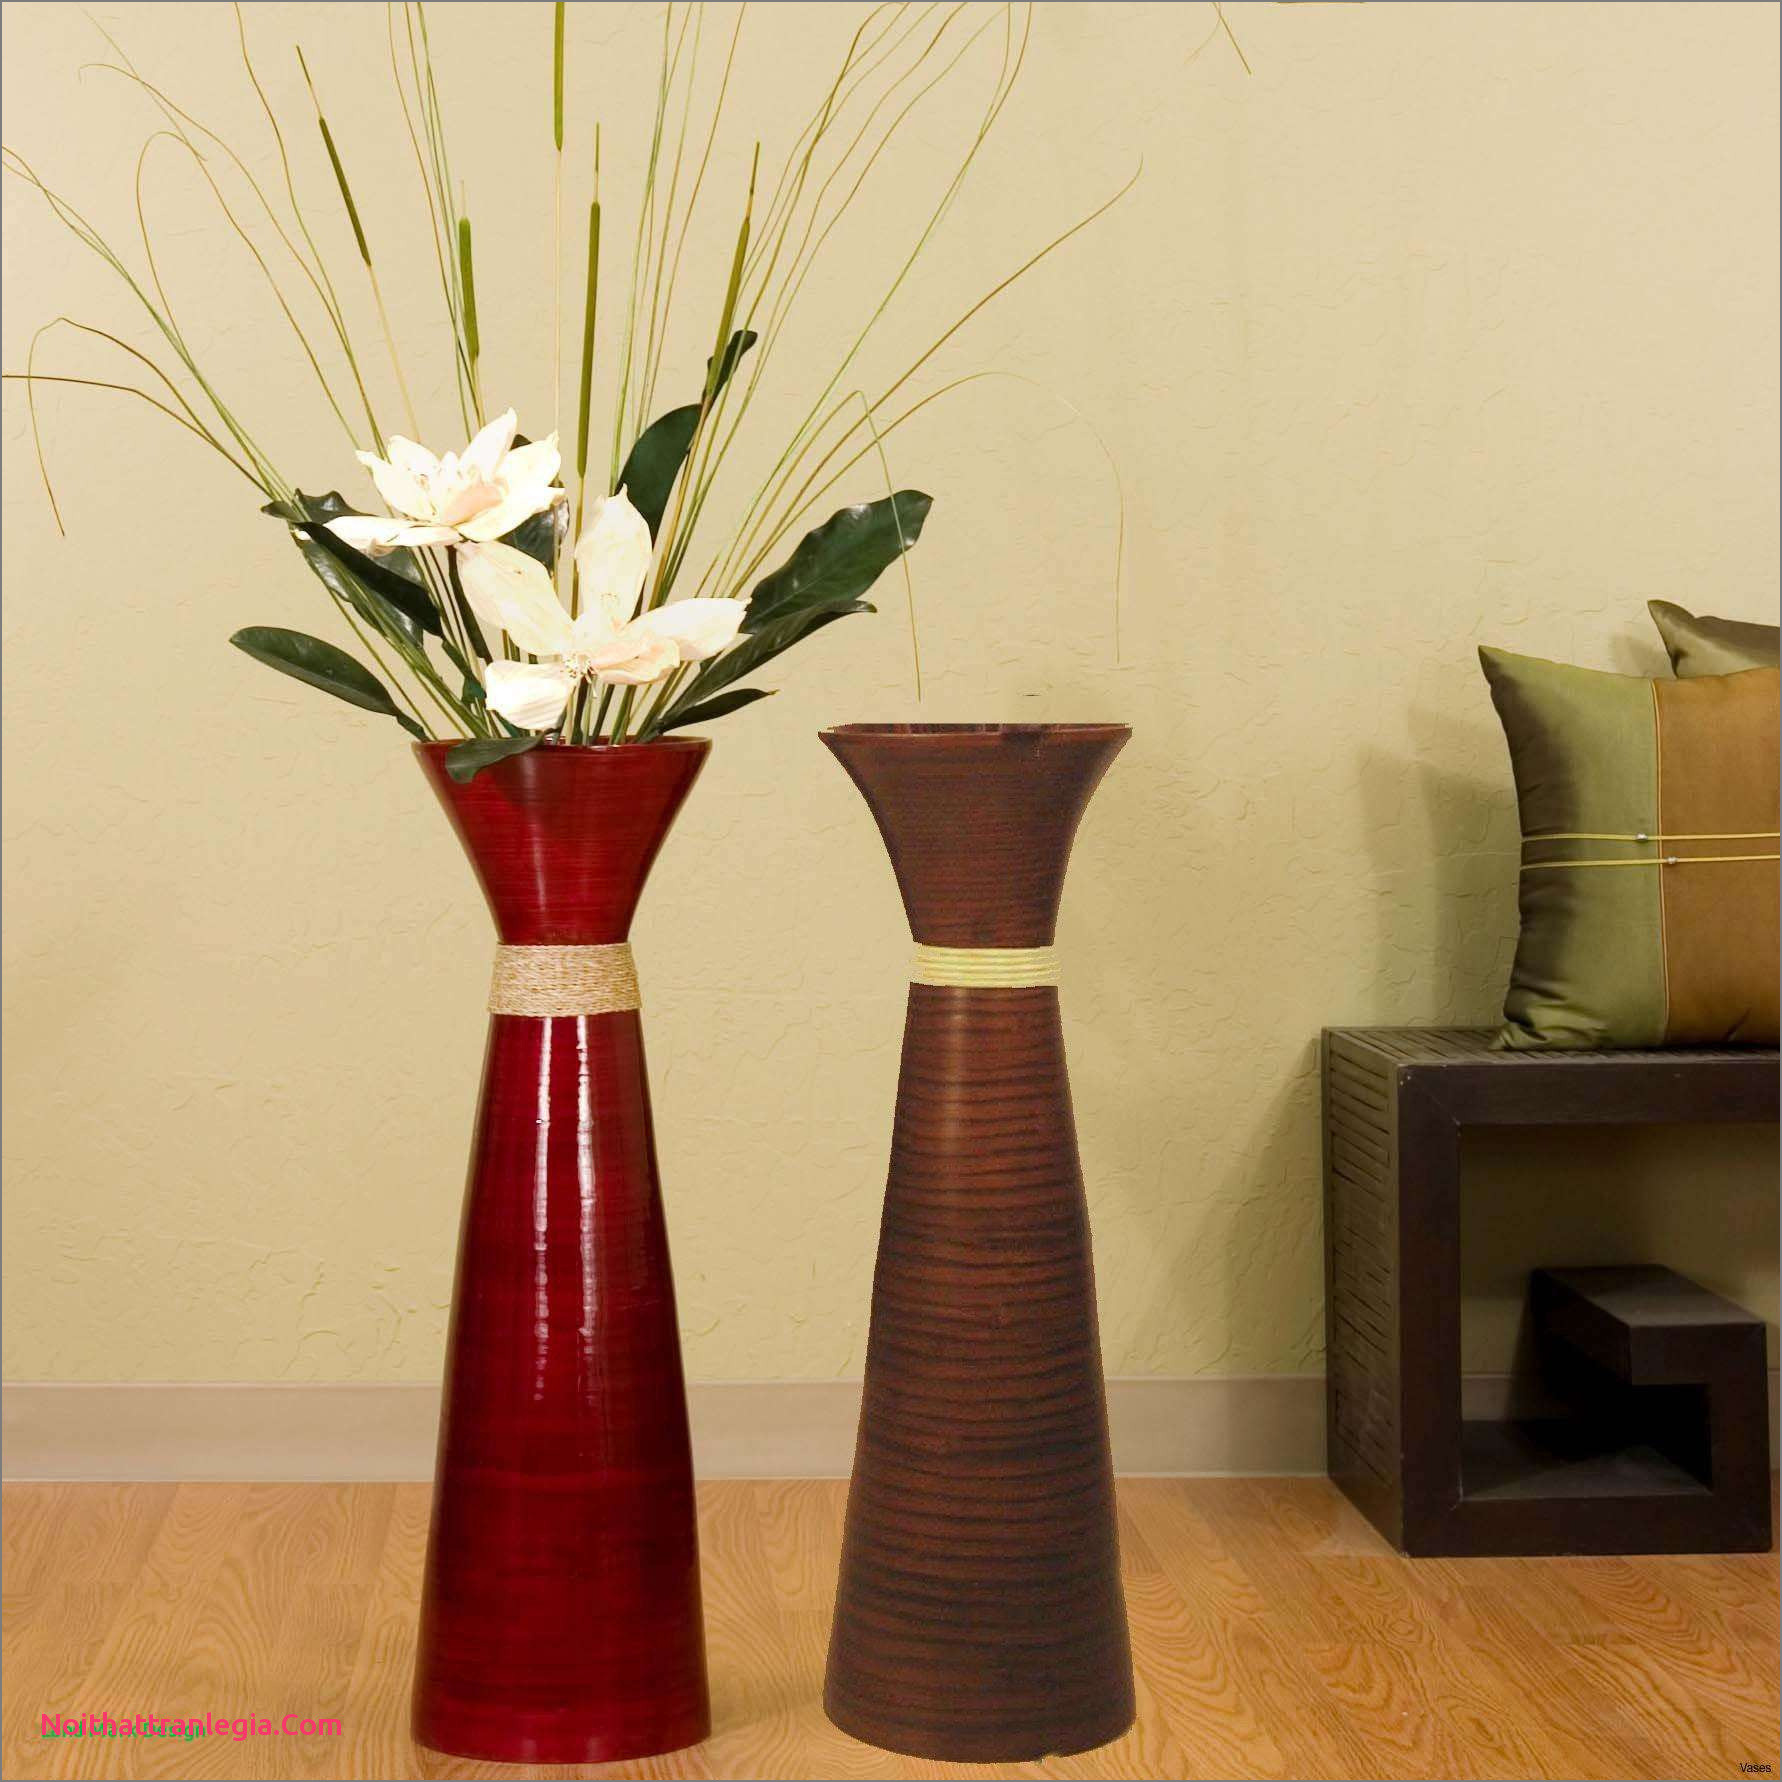 Large Tall Floor Vases Of 20 Large Floor Vase Nz Noithattranlegia Vases Design Regarding Full Size Of Living Room Wooden Vase Best Of Vases Flower Floor Vase with Flowersi Large